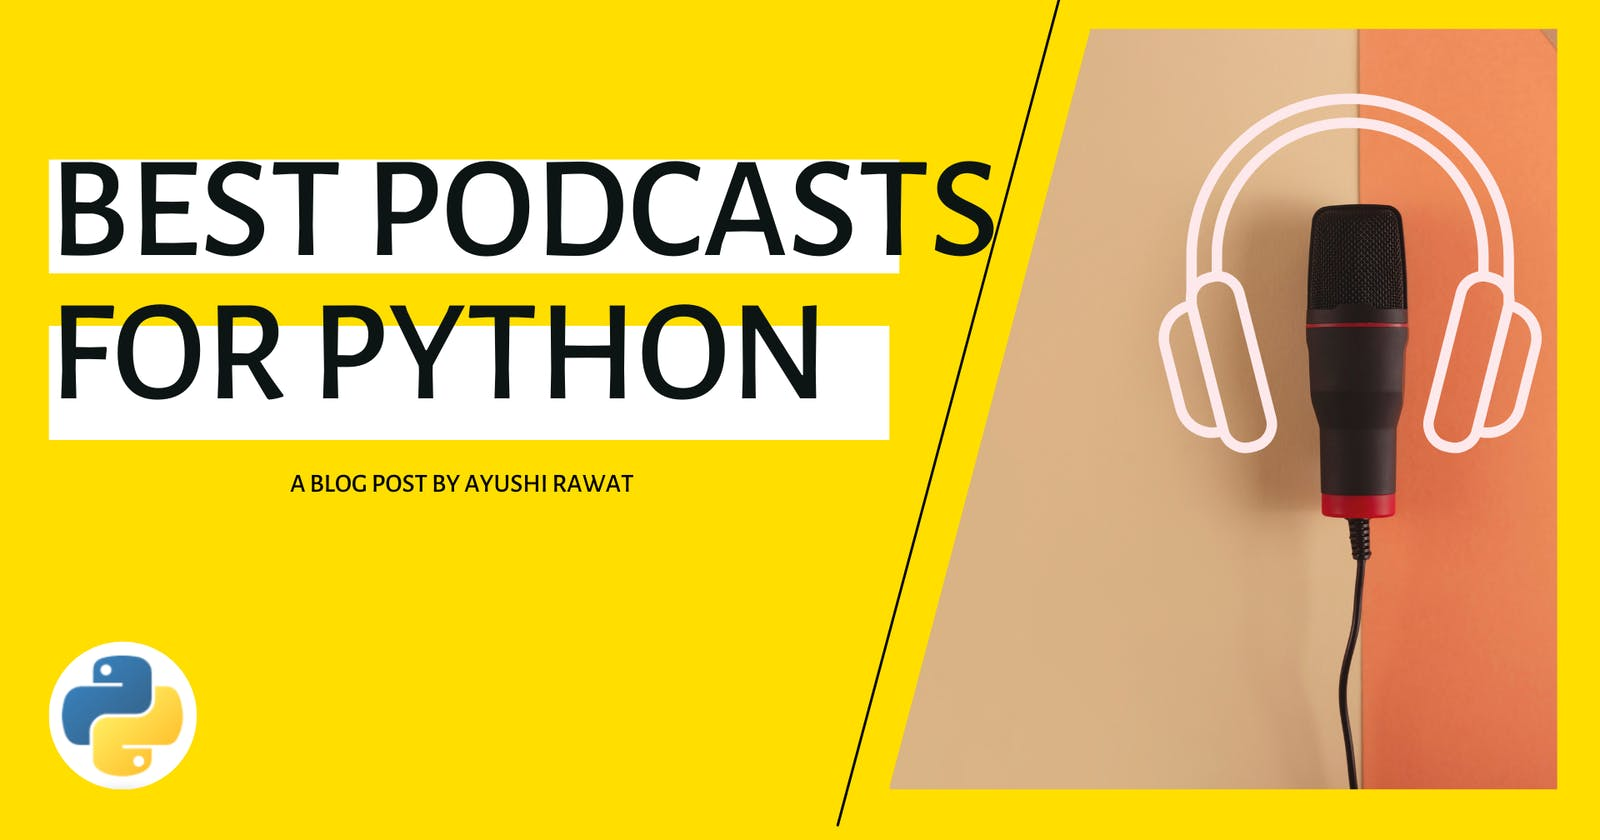 Best Podcasts for Python